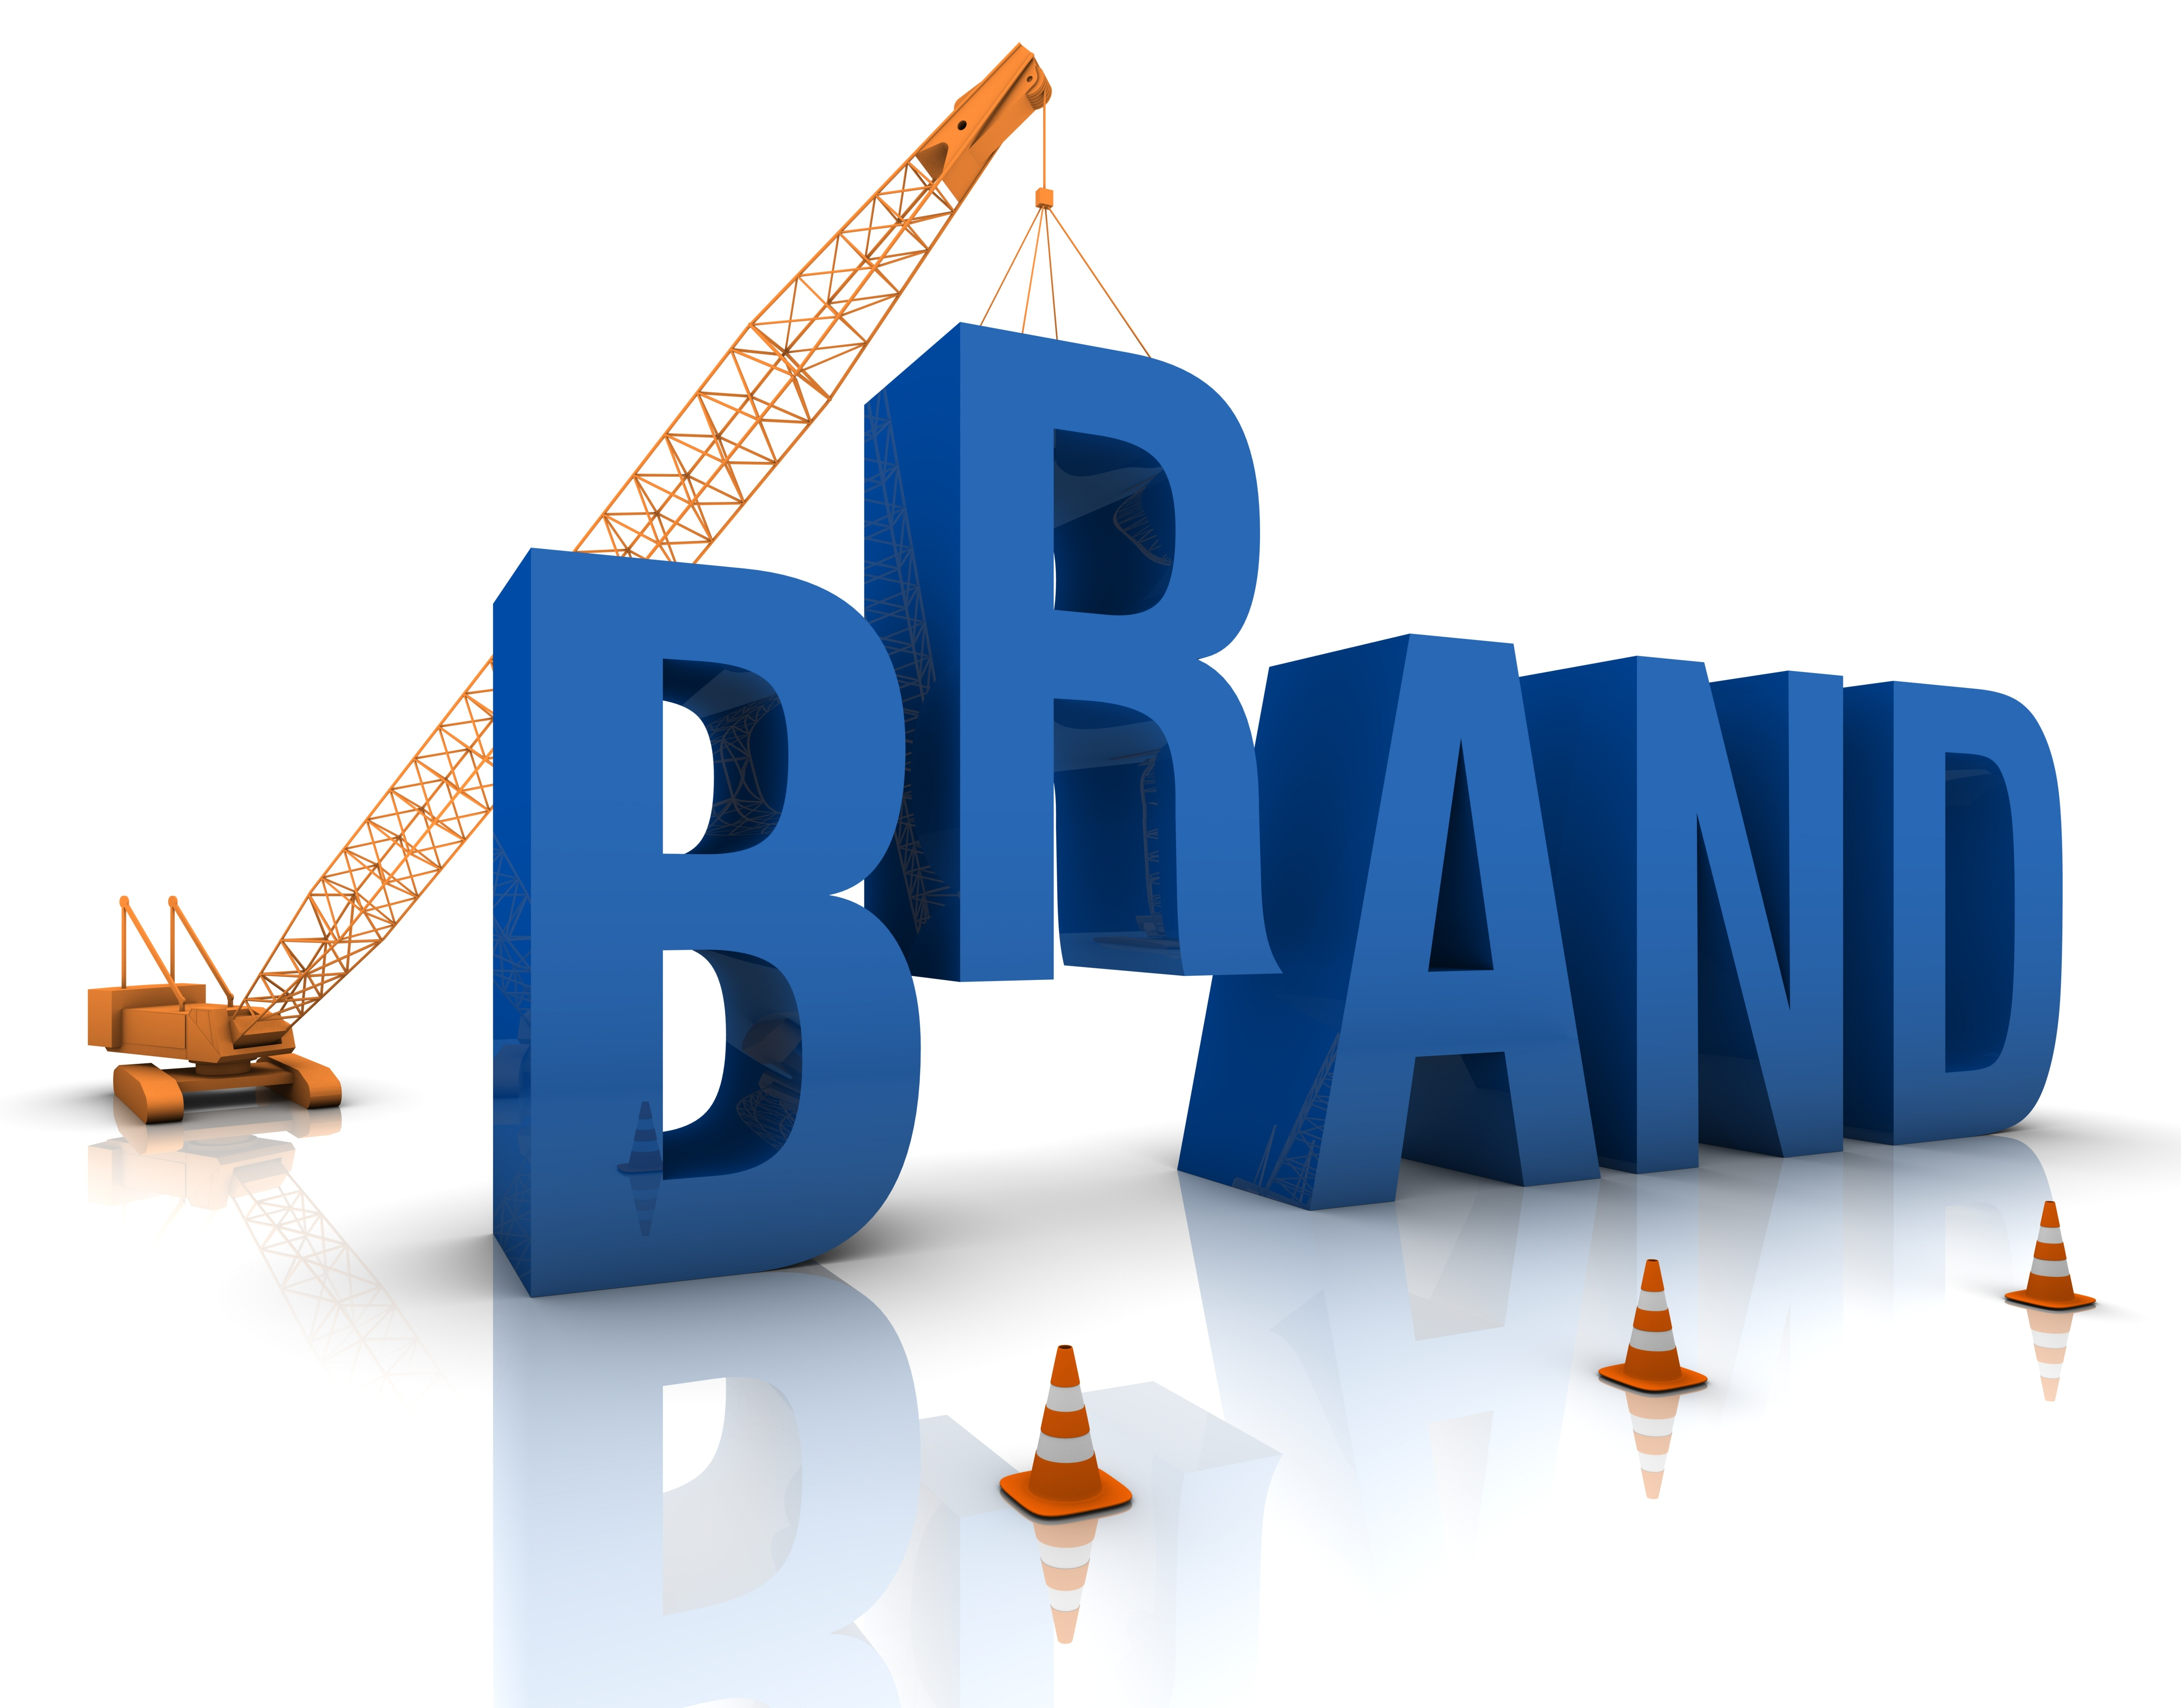 6 Ways PR Builds Brand Marketing